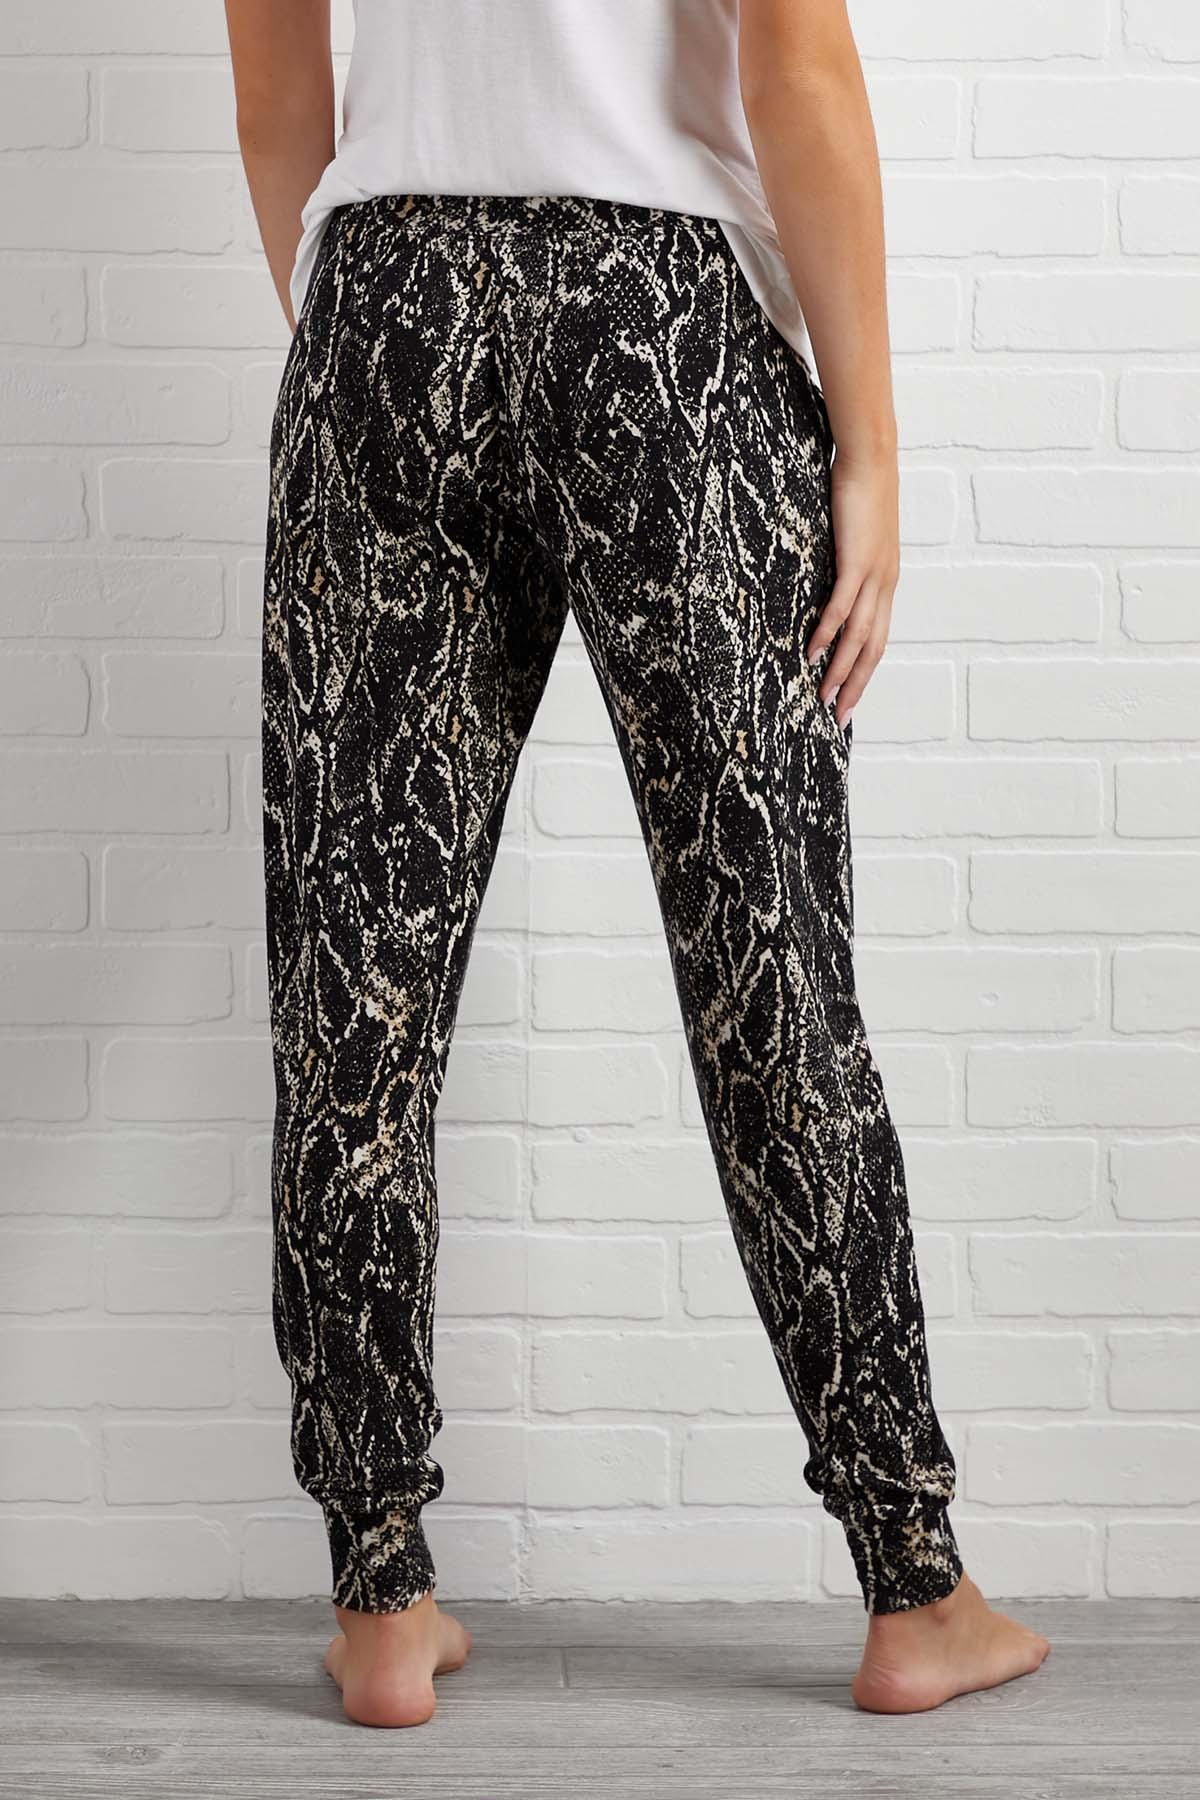 Hit The Sssnooze Button Pants